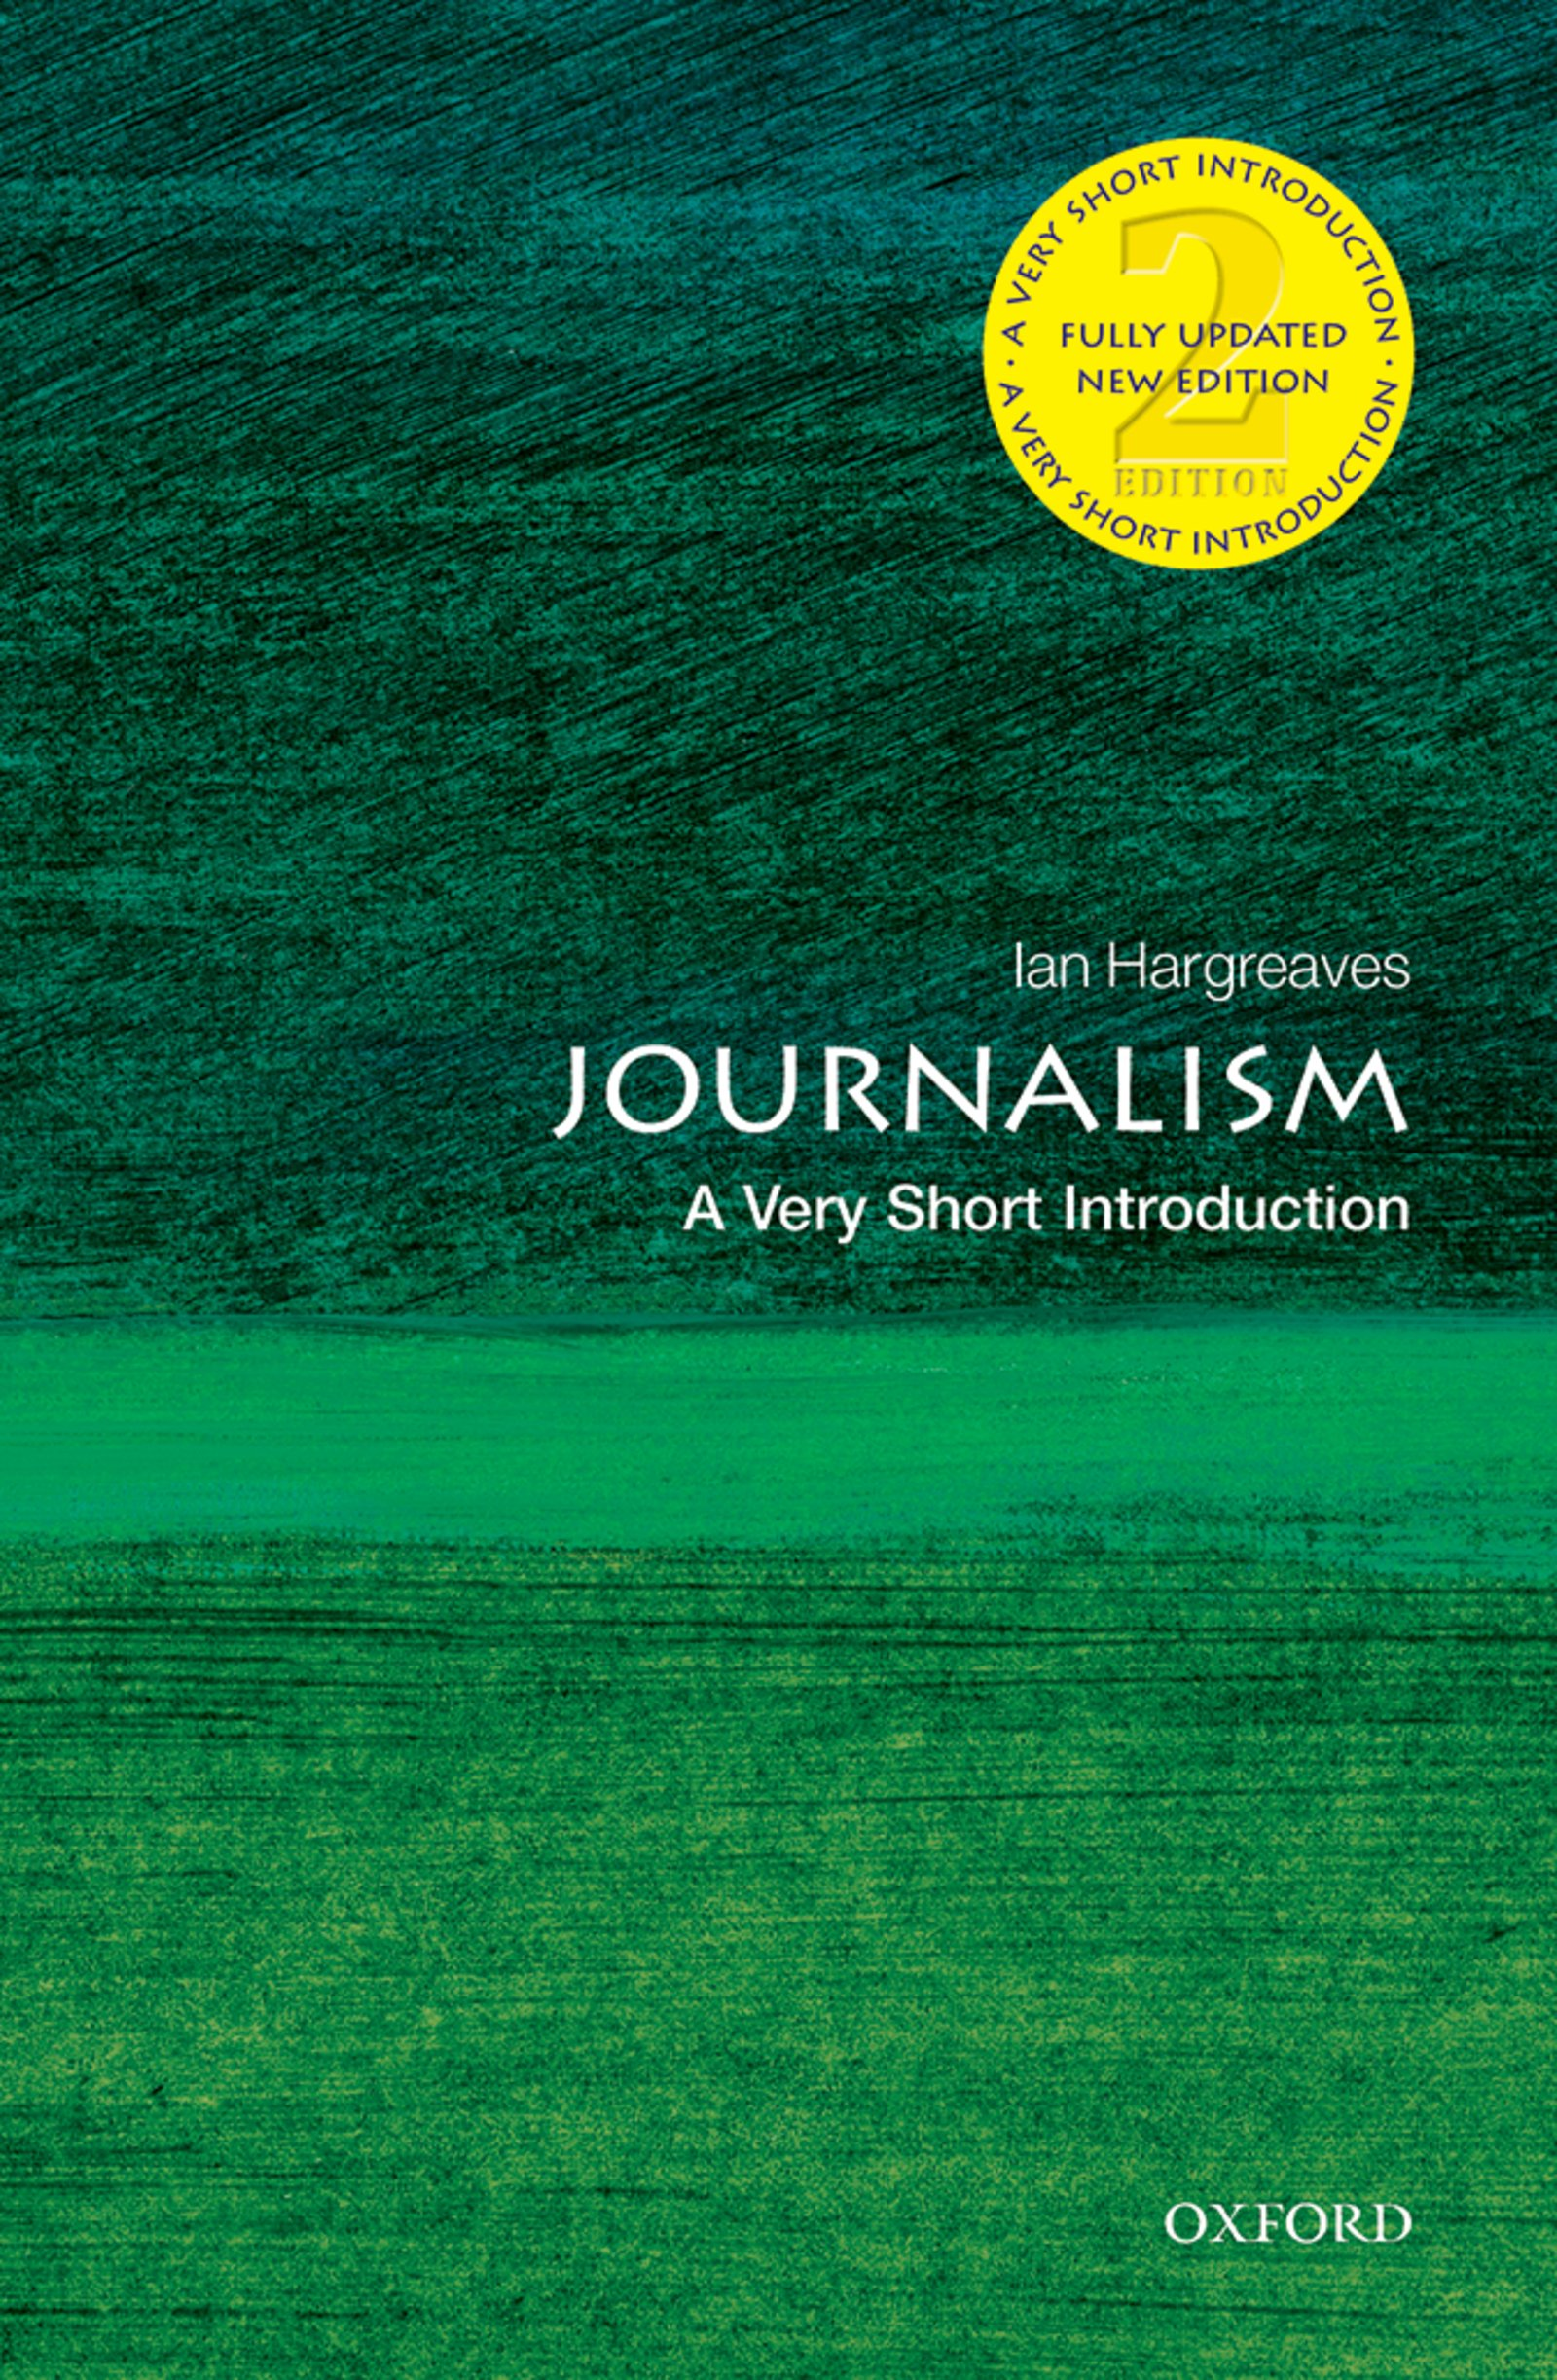 Download Ebook Journalism: A Very Short Introduction (2nd ed.) by Ian Hargreaves Pdf